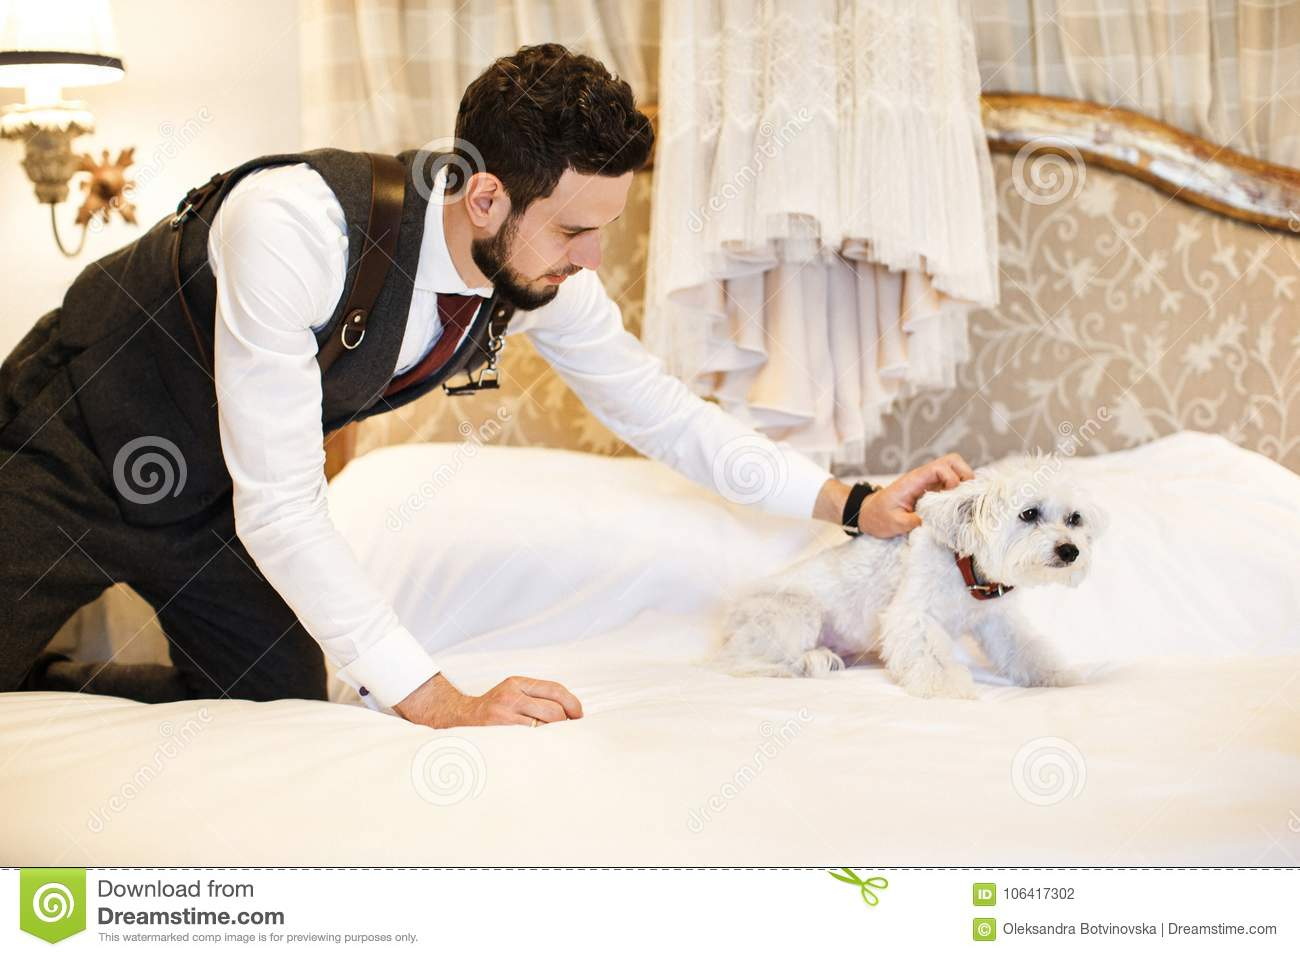 Man With Cute White Dog Wedding Dress Hanging On The Bed In The